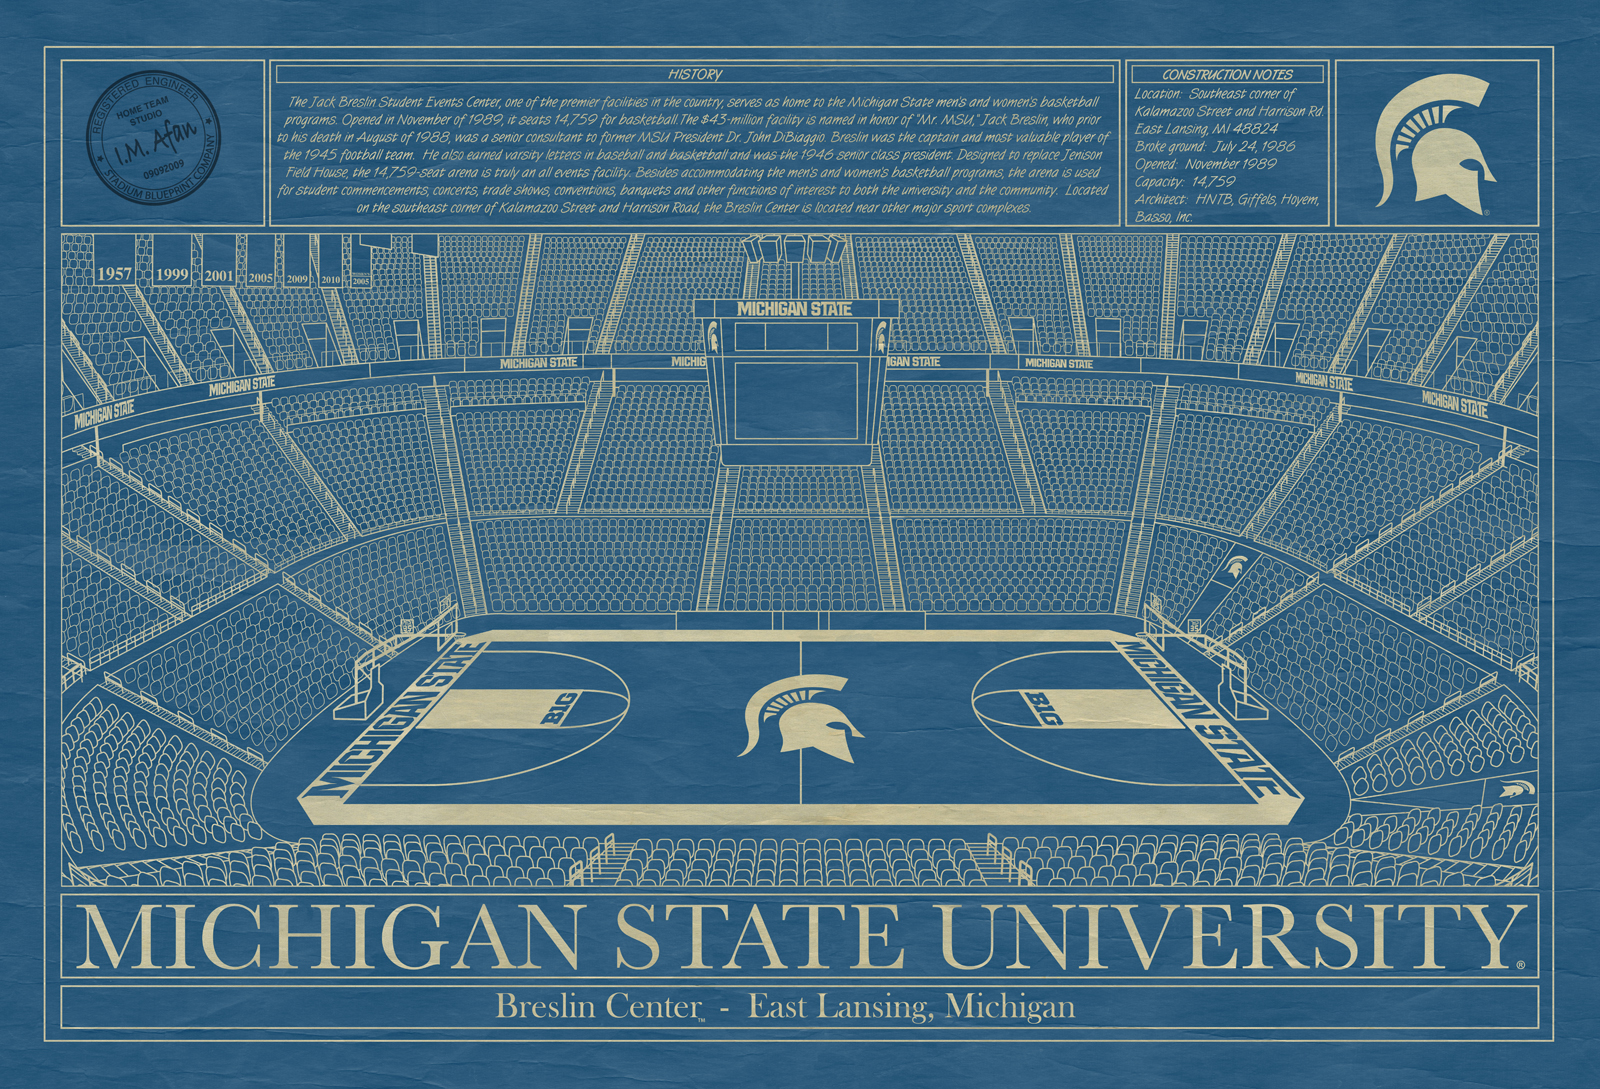 Michigan state university breslin student events center stadium michigan state university breslin student events center blueprint malvernweather Images